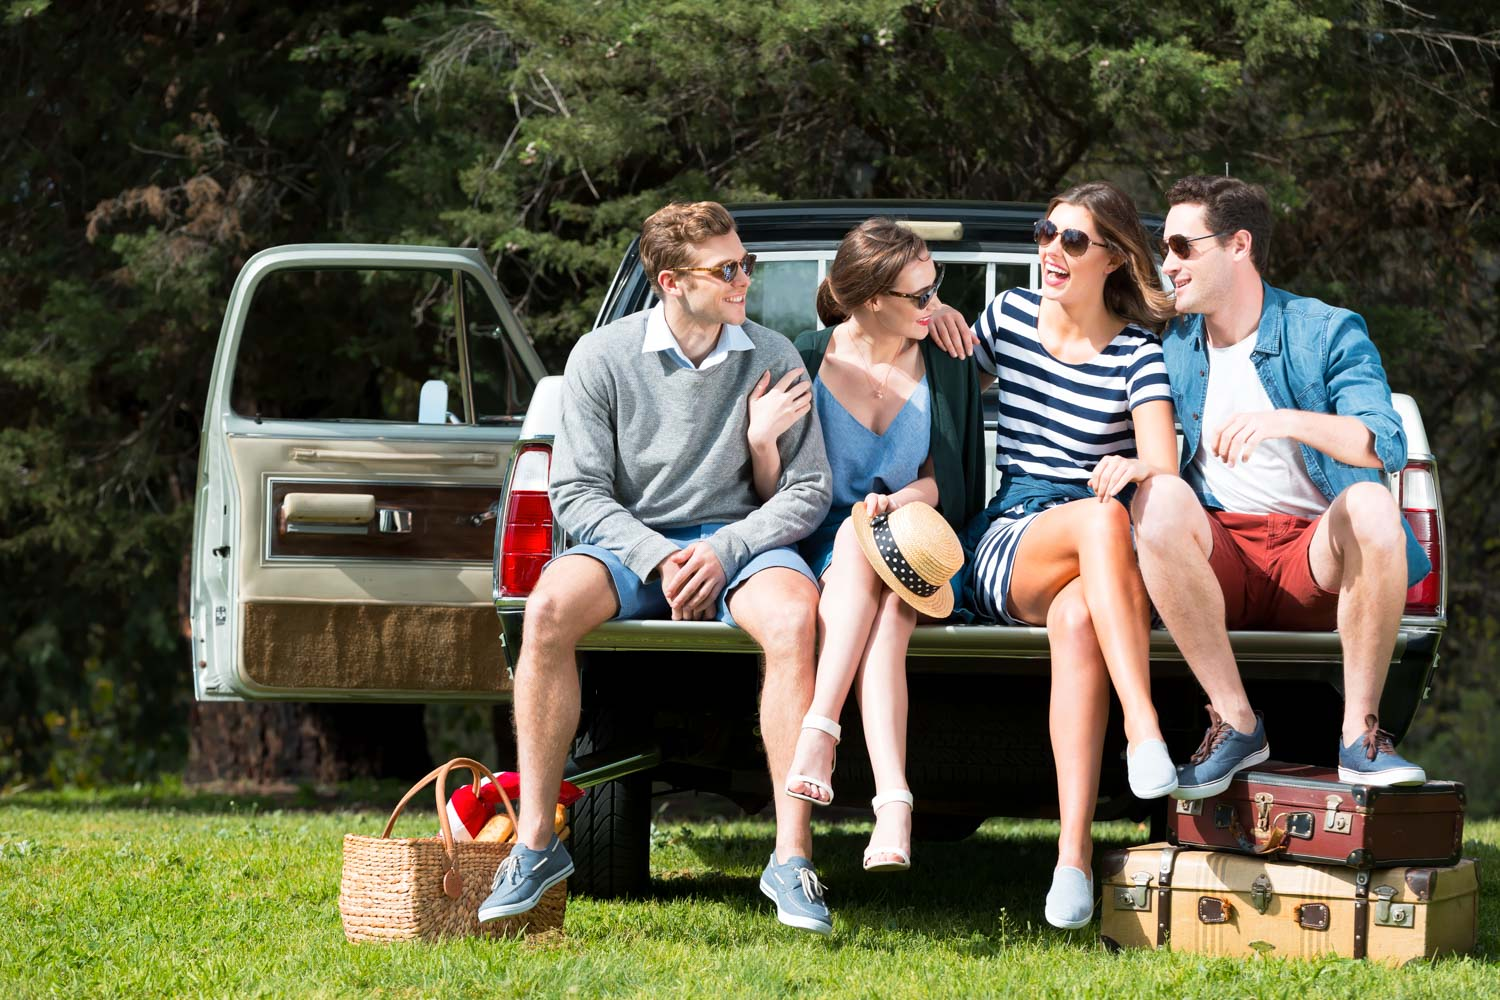 Two young couples sit on the back of a vintage truck with picnic blankets & they are smiling. The truck is in a park.